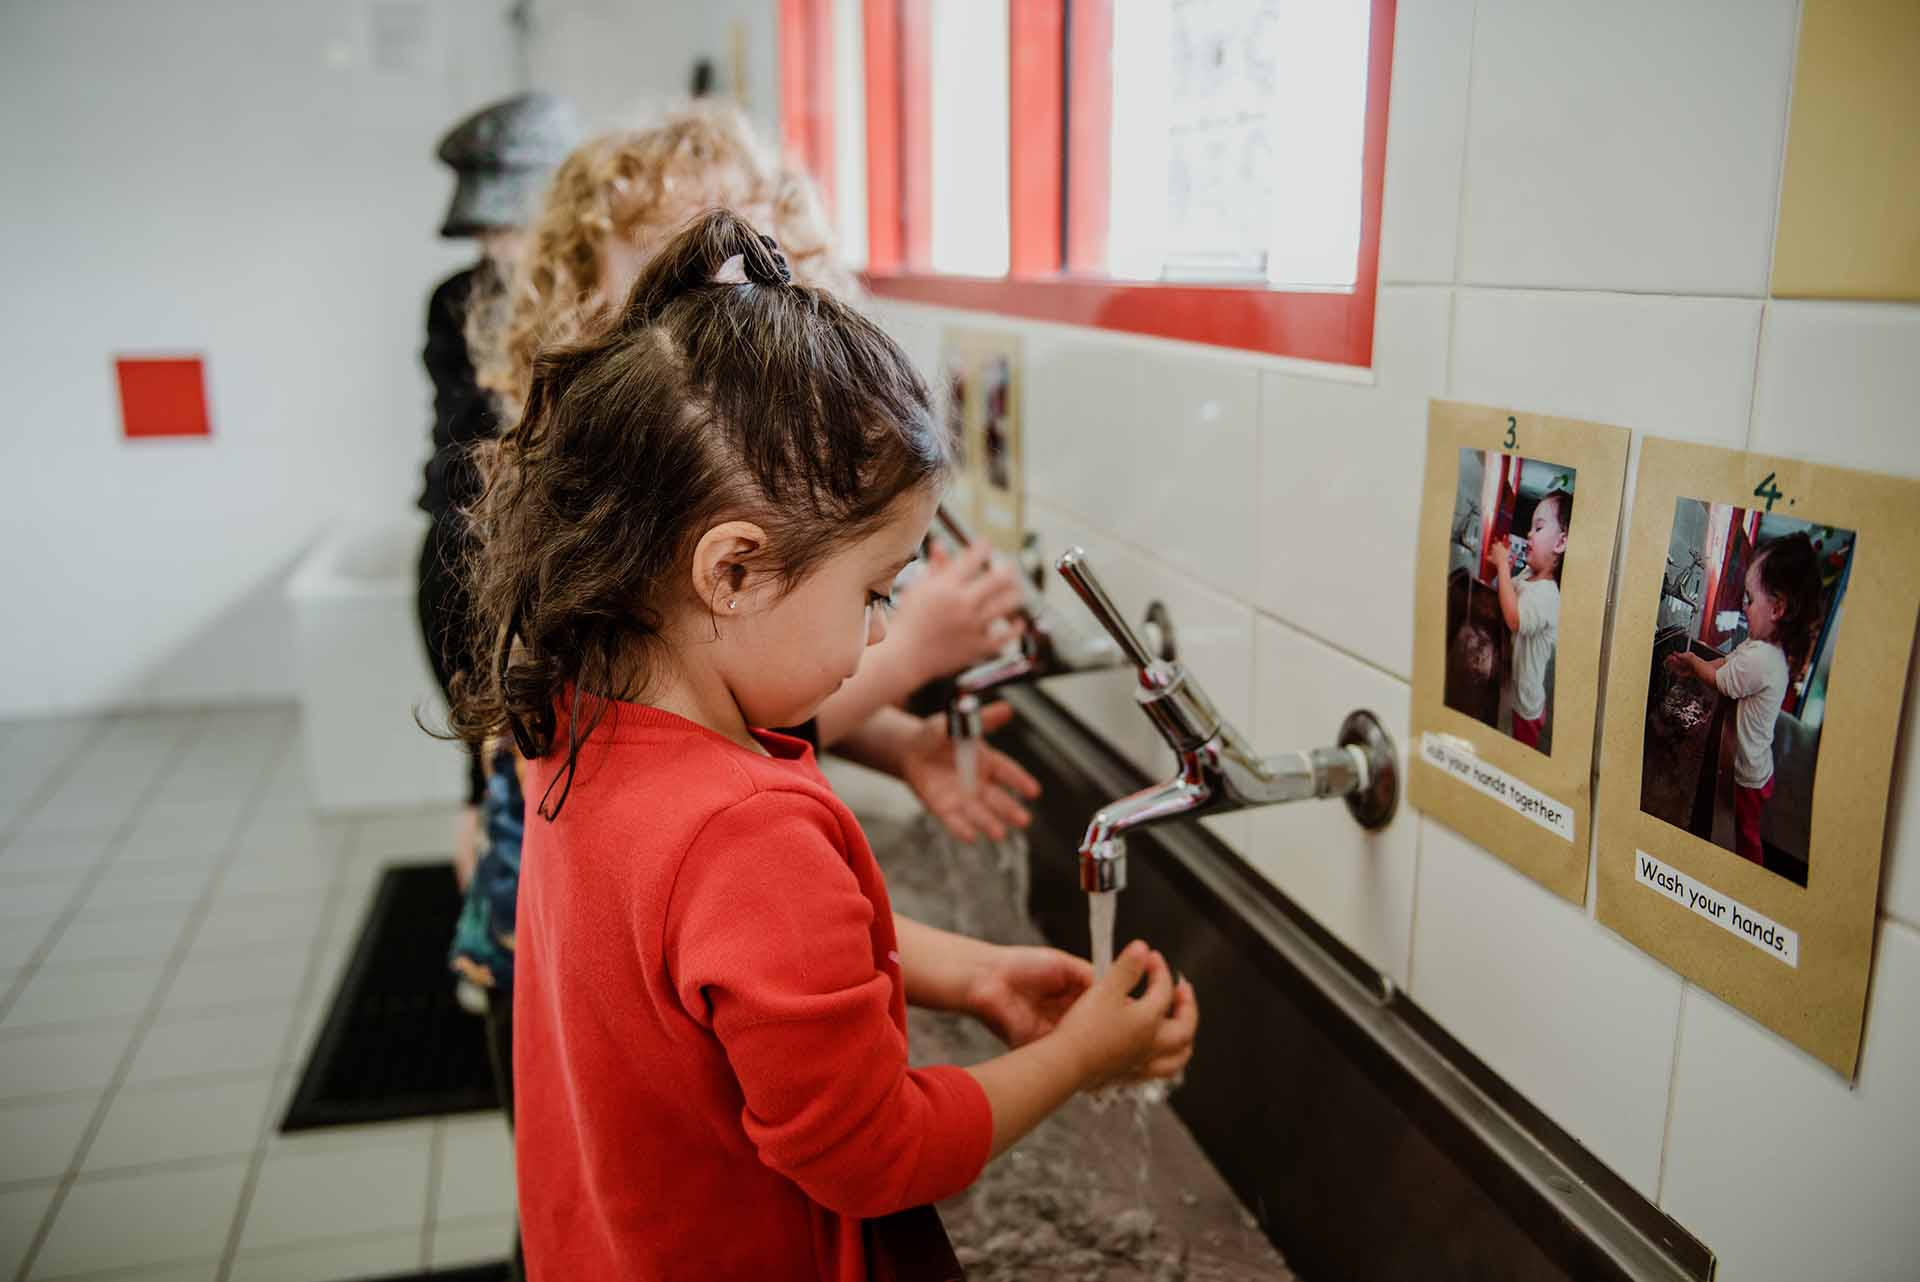 Children washing their hands together at Centrepoint childcare centre